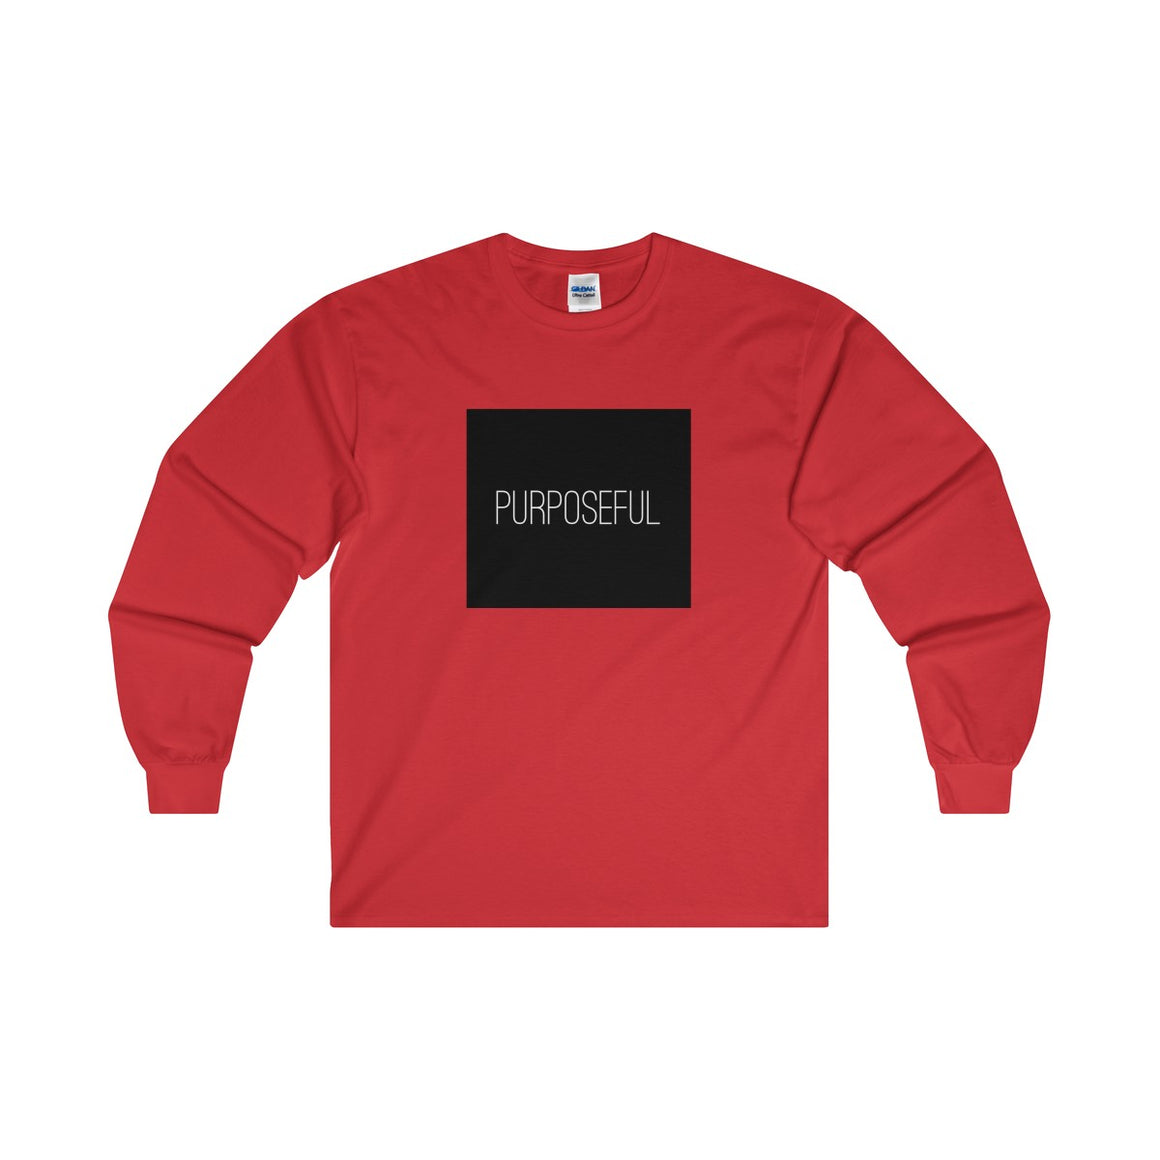 Purposeful Long Sleeve Tee